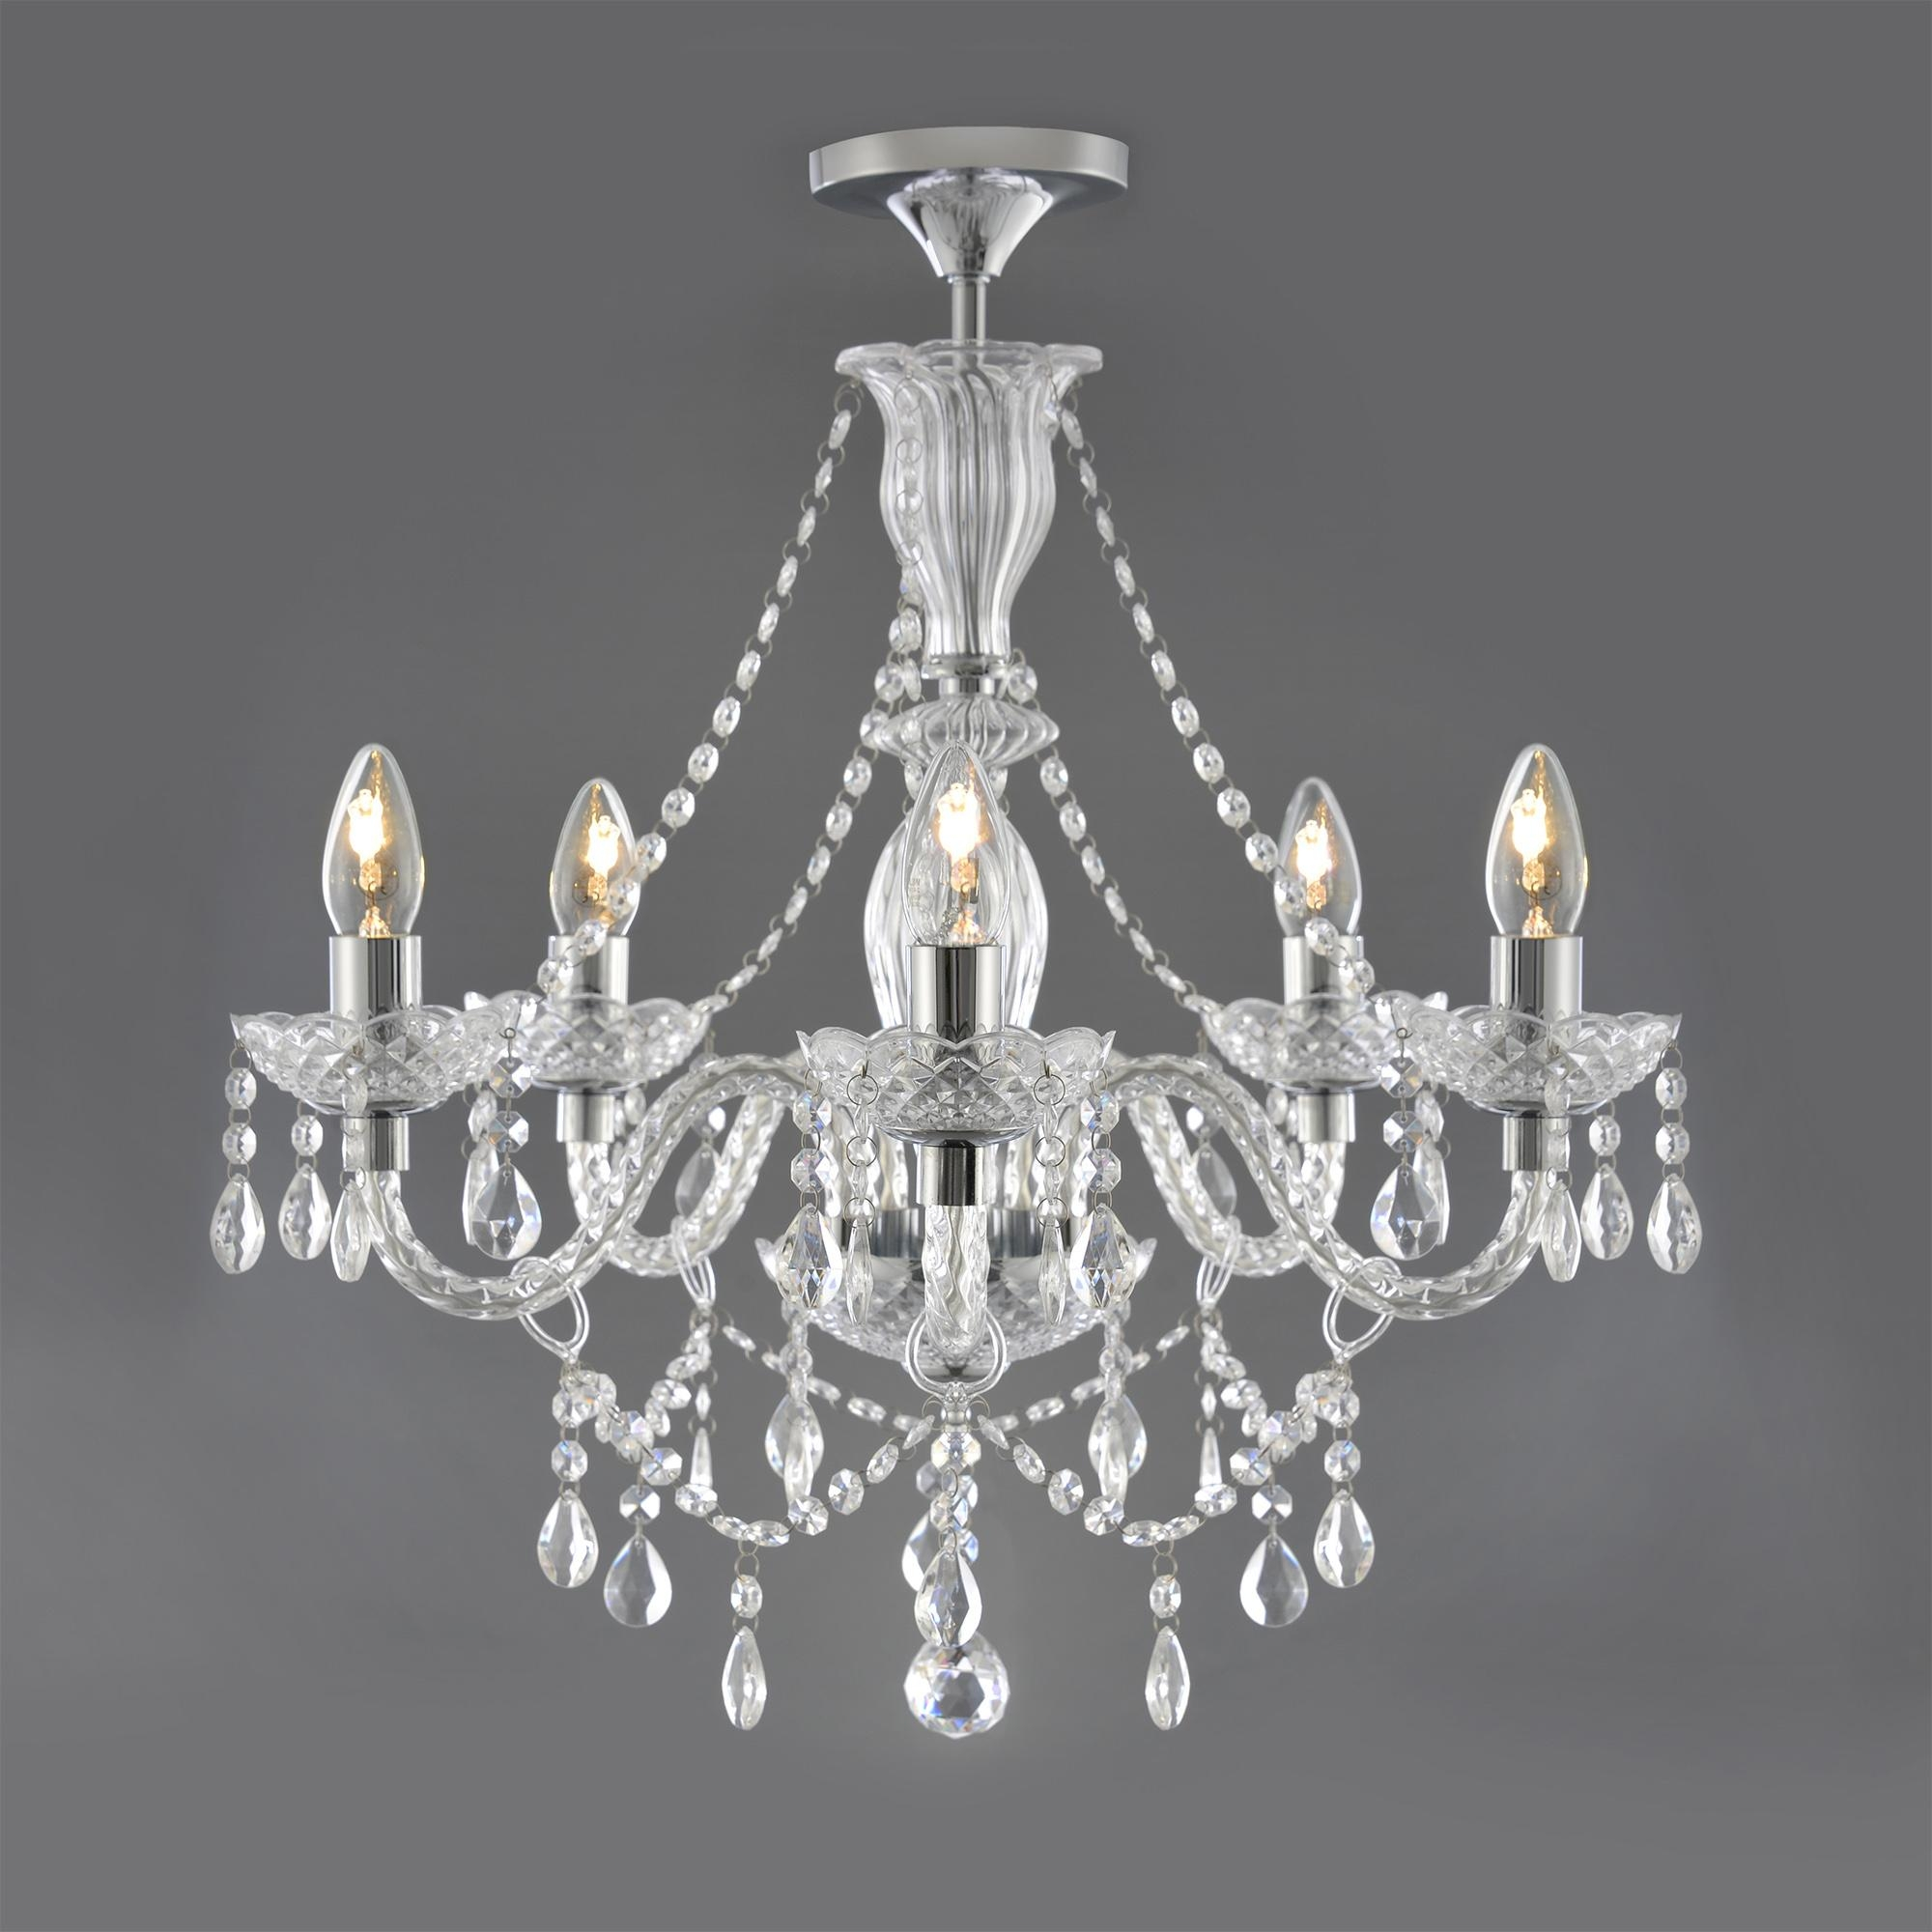 Small Chandeliers For Low Ceilings Home Decor Lighting Ideas For Small Chandeliers For Low Ceilings (Image 11 of 15)